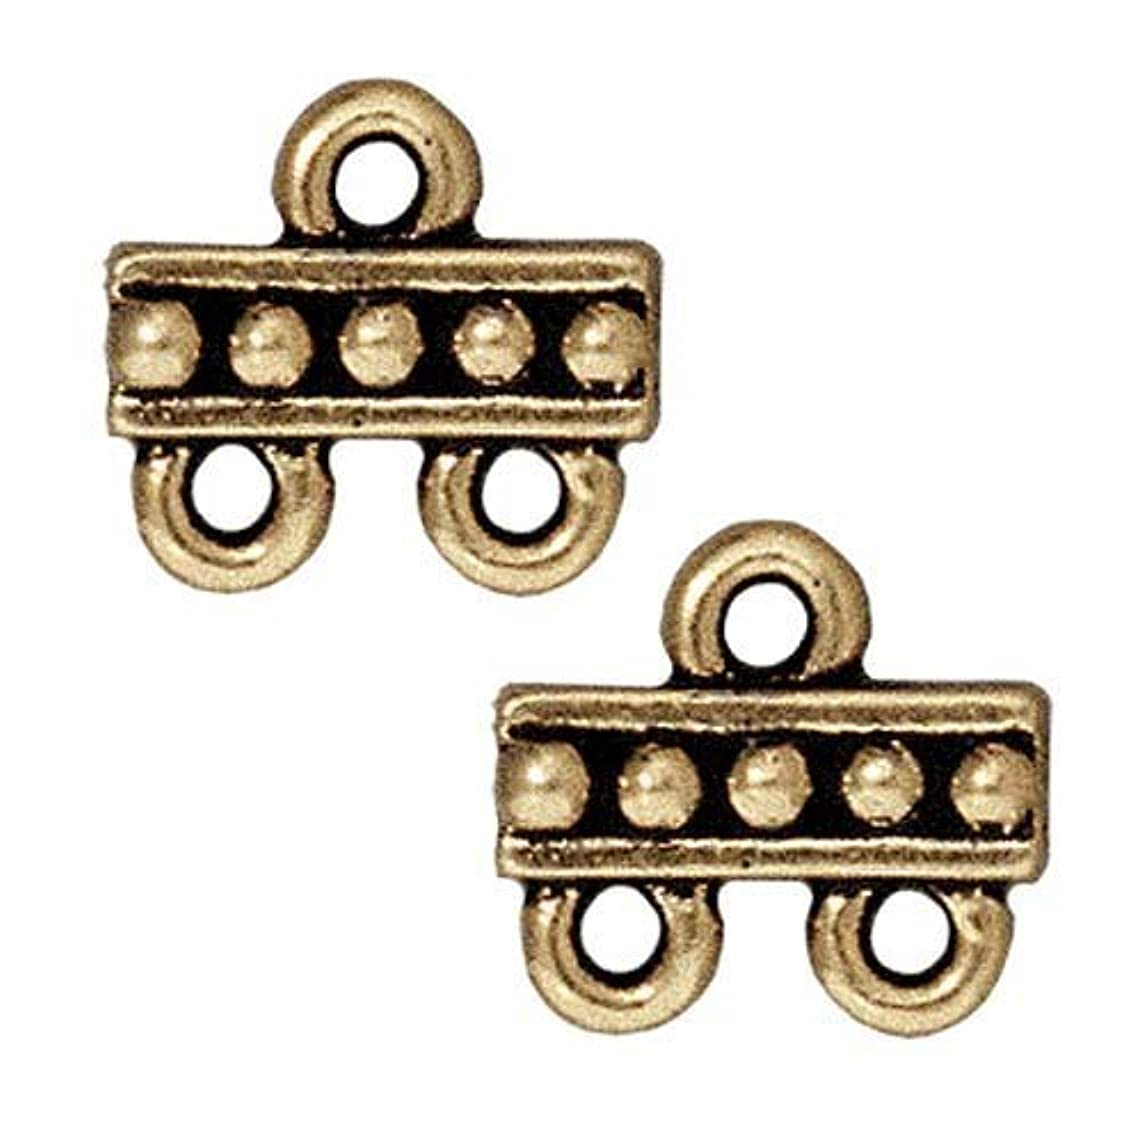 TierraCast 2-1 Link Beaded Decorative Item, 9.5 x 10.5mm, Antiqued Brass Oxide Finish Pewter, 4-Pack